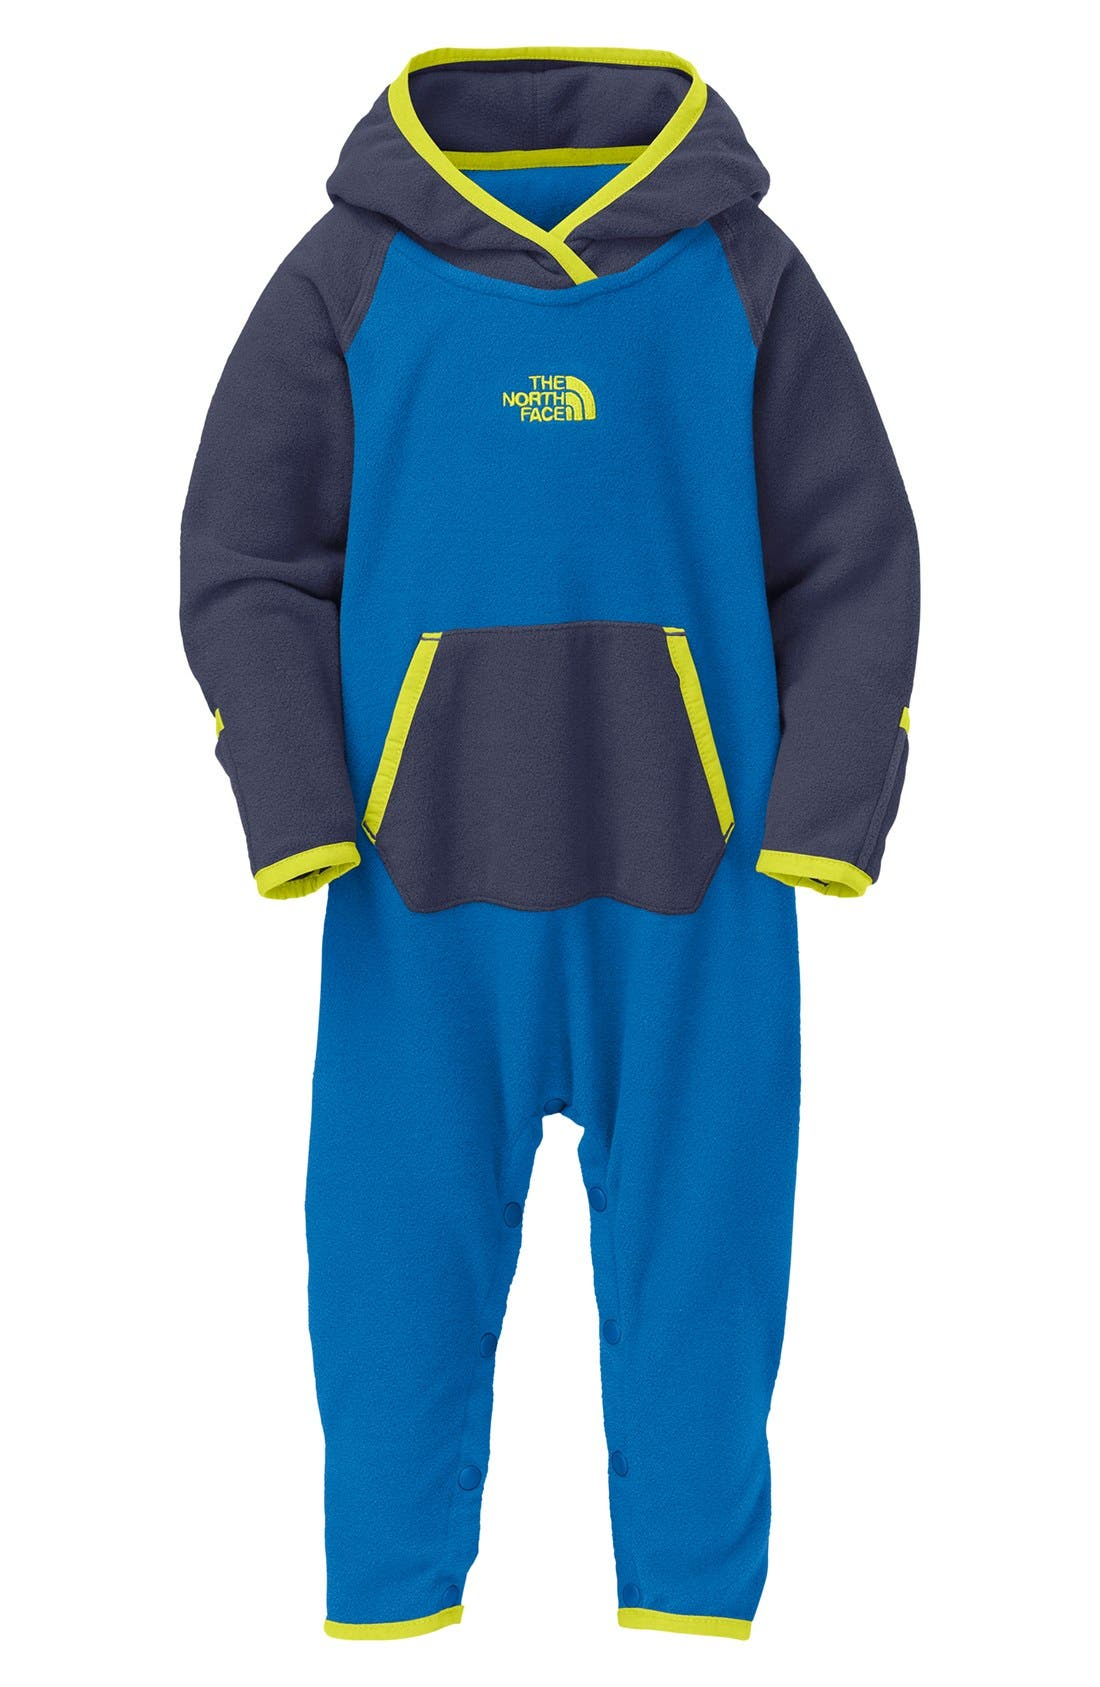 Main Image - The North Face 'Glacier' One-Piece (Baby Boys)